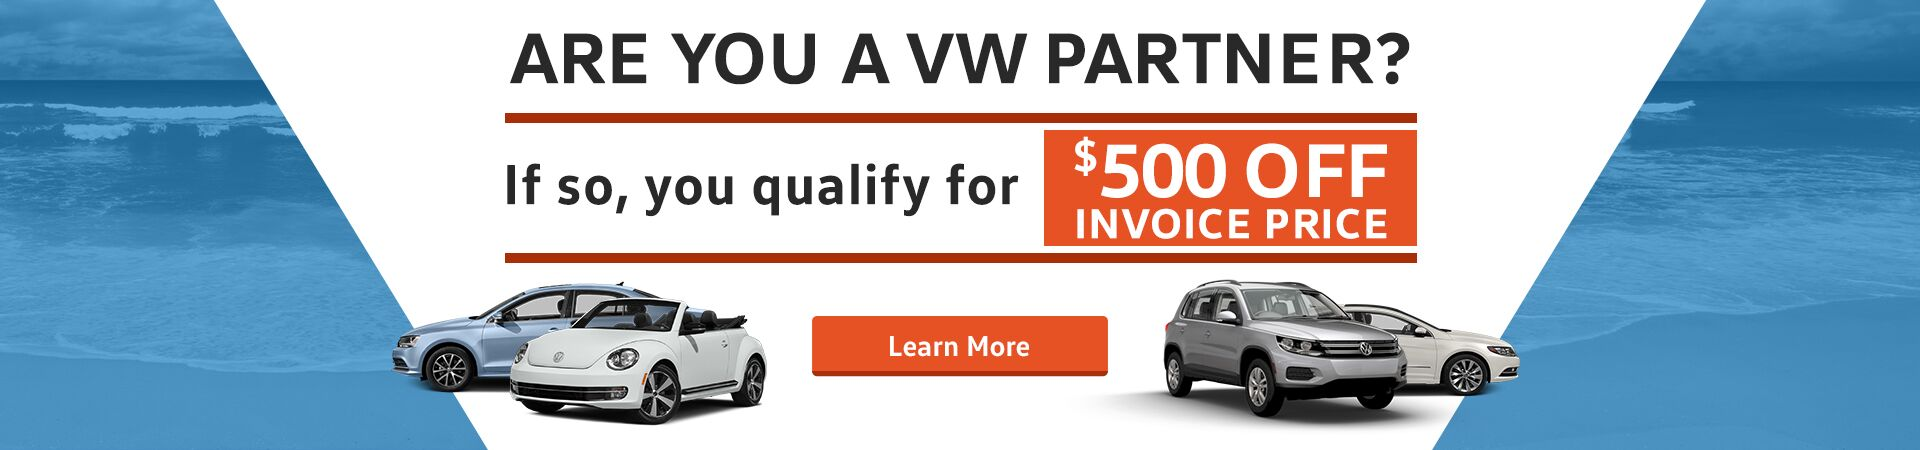 VW Partner Program Slider